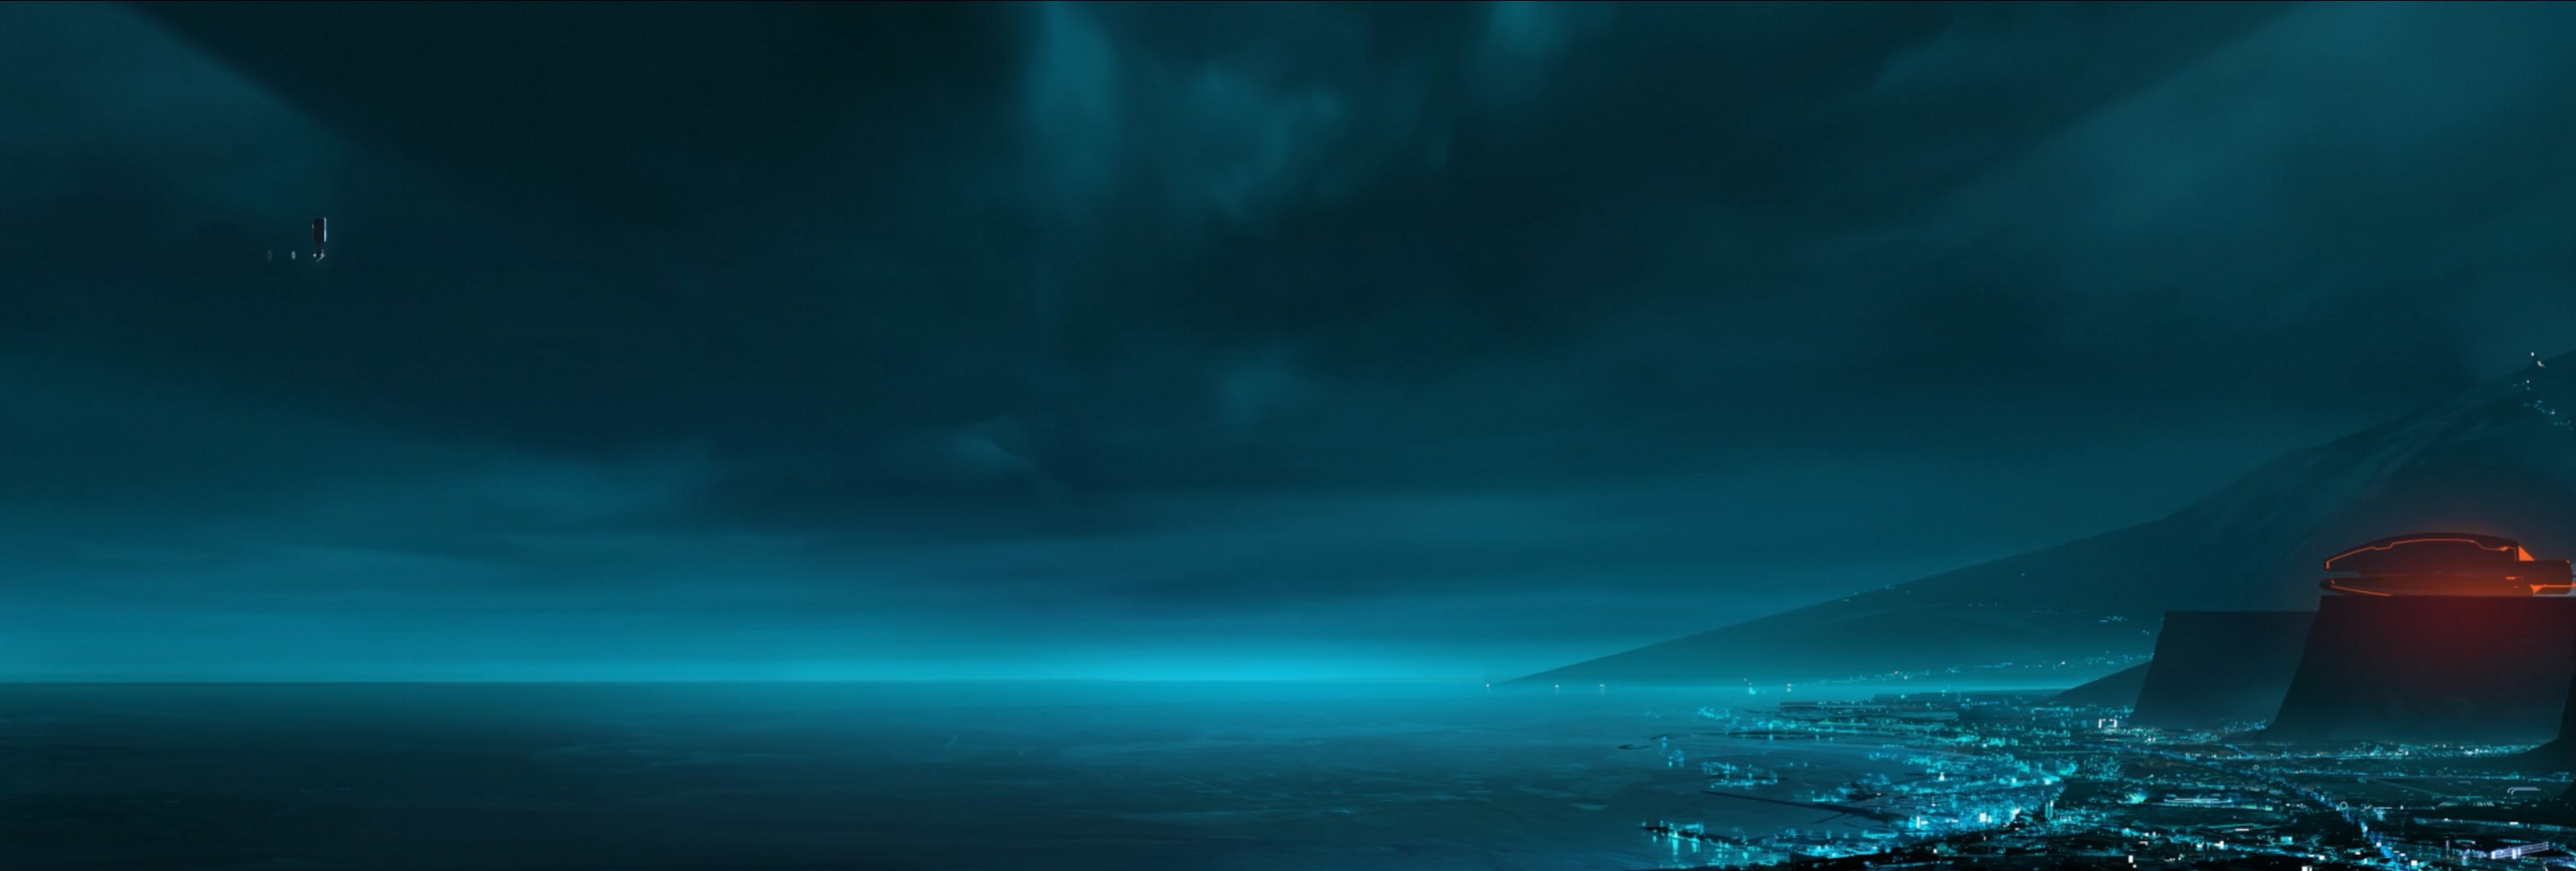 3195x1080 ... tron wallpapers hd desktop and mobile backgrounds ...